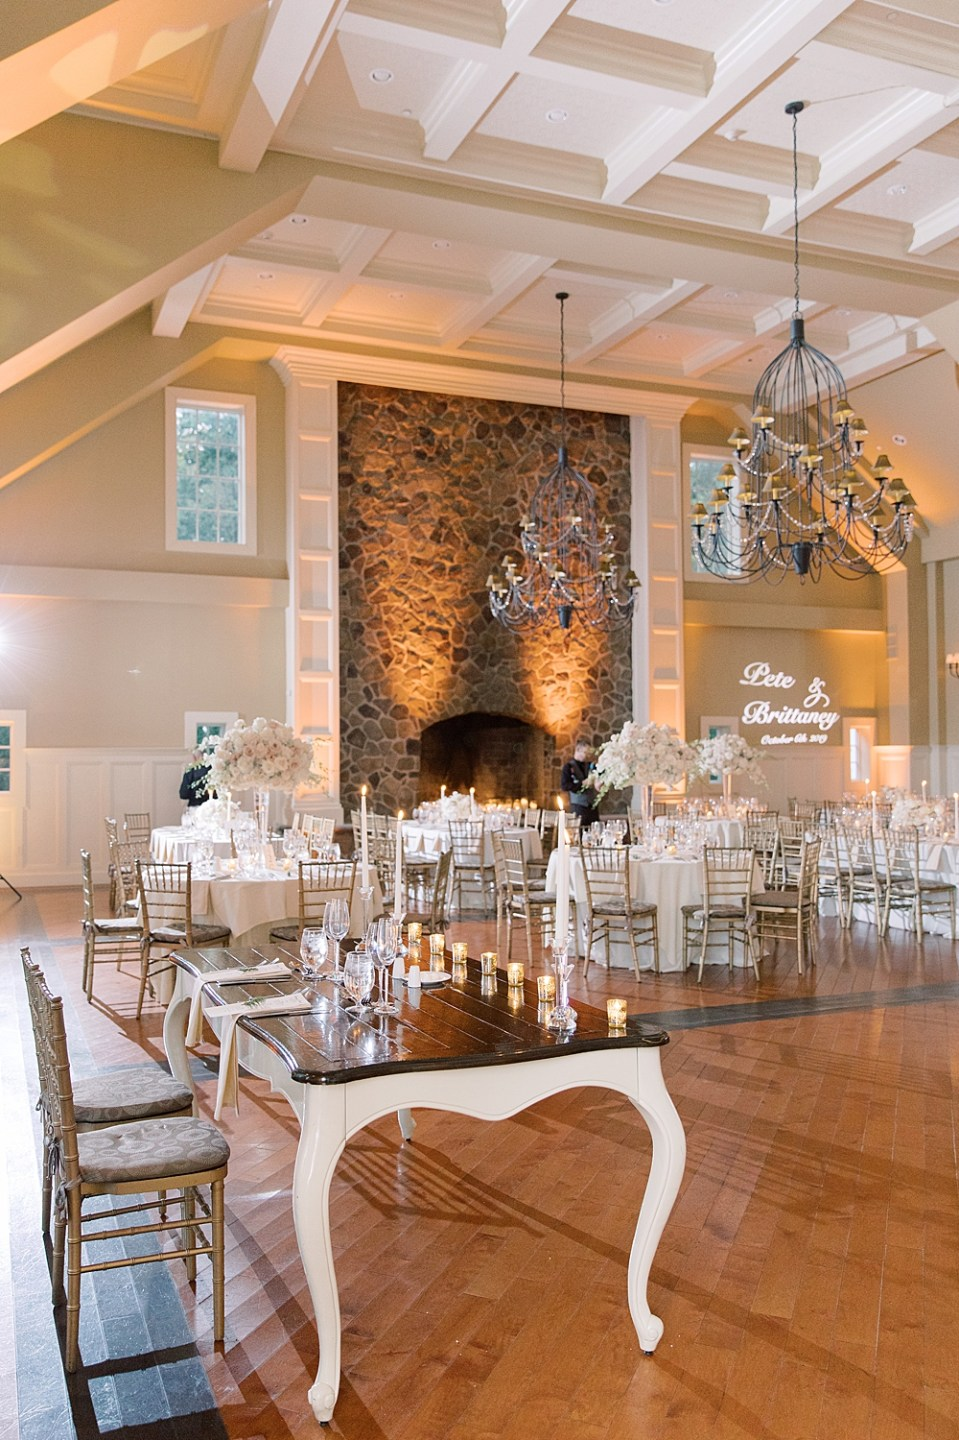 the ryland inn grand ballroom | Sarah Canning Photography | new jersey wedding photography